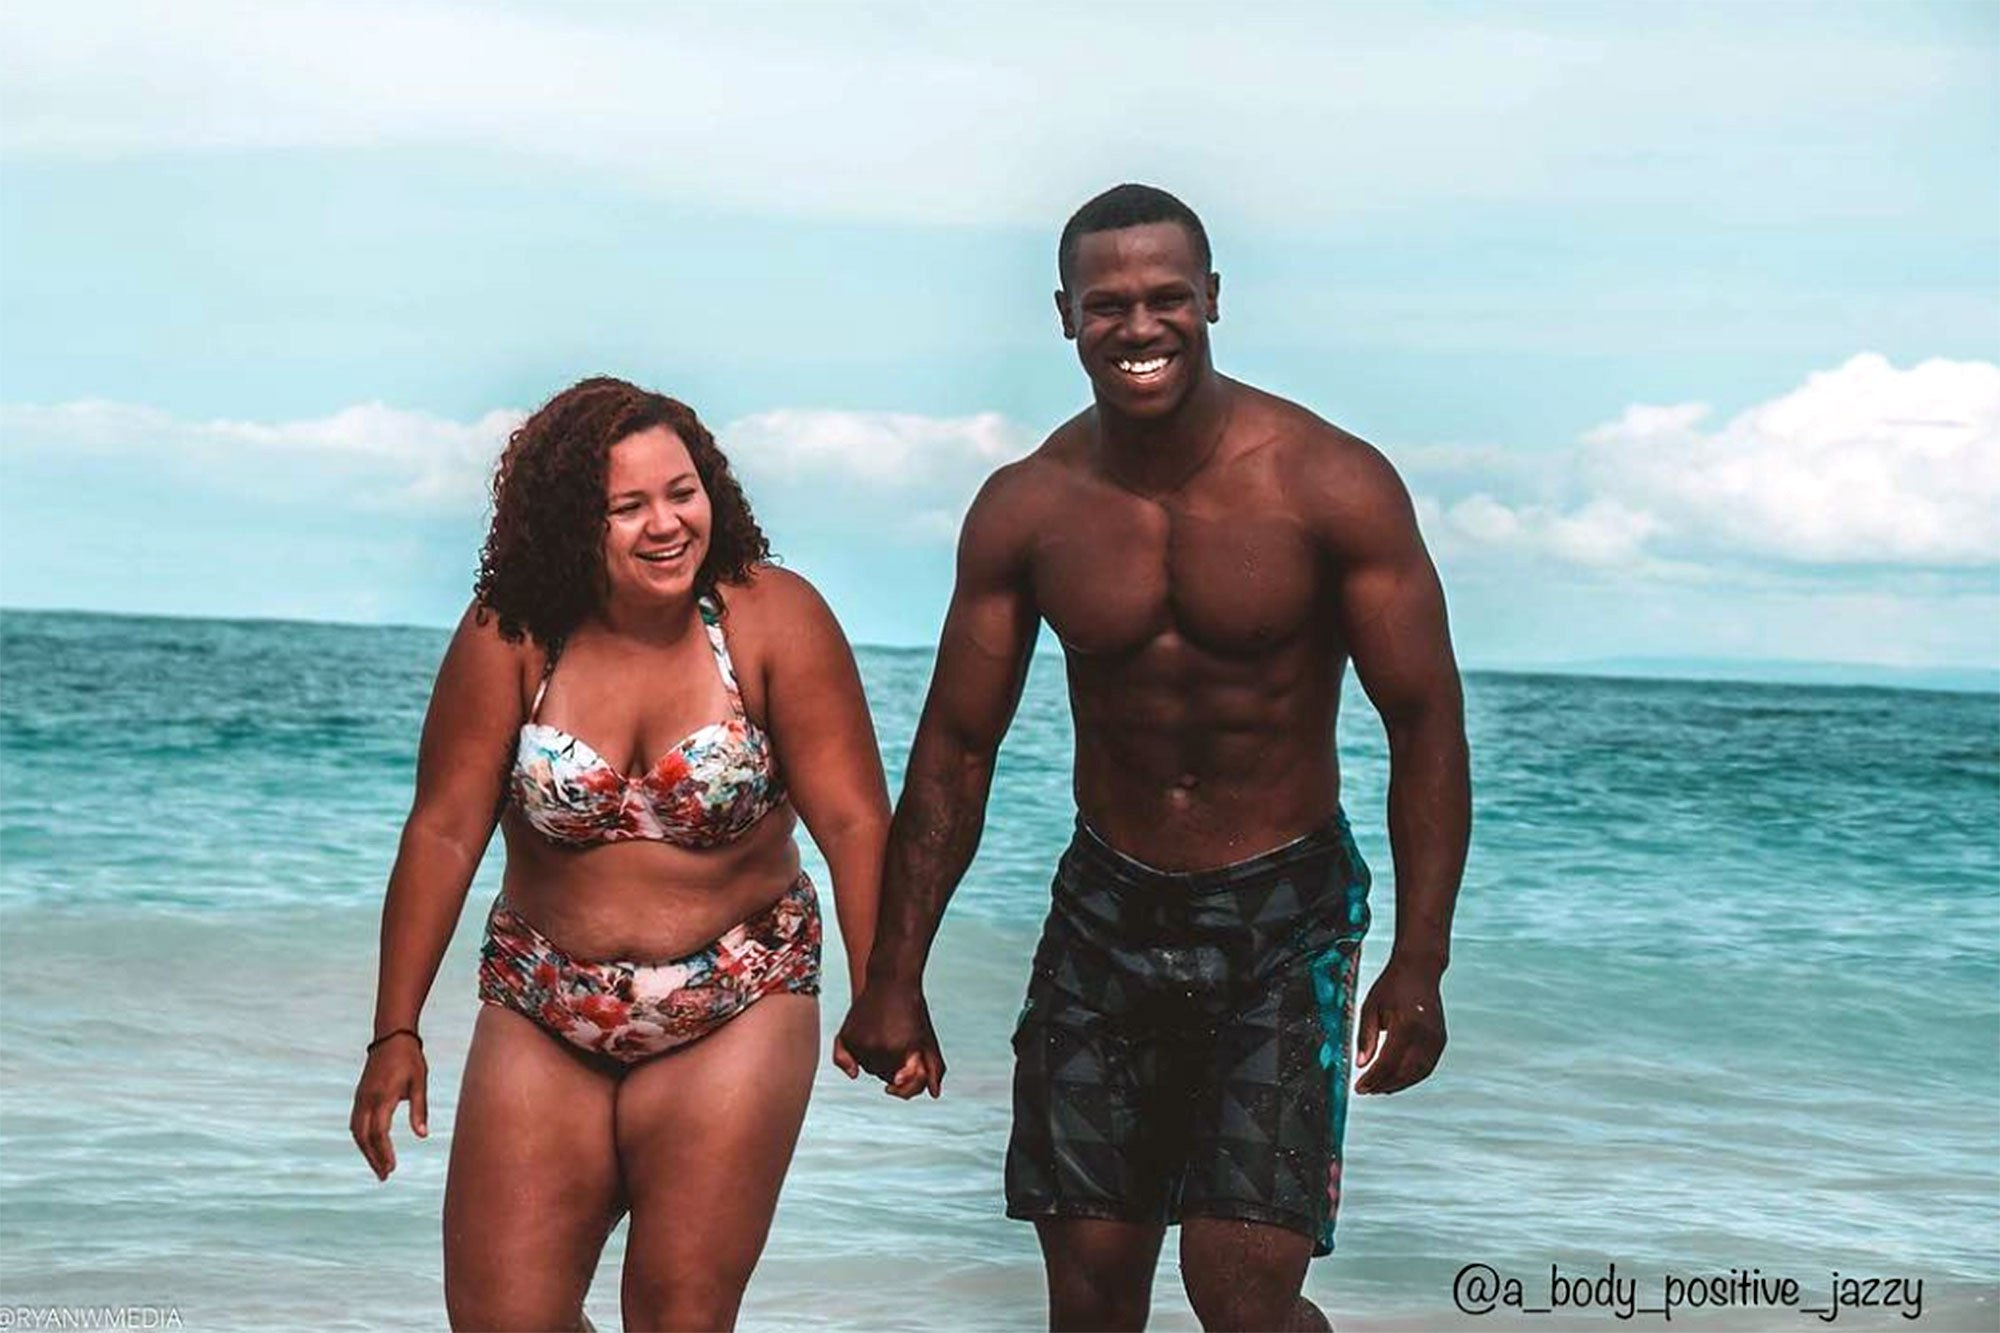 This Woman's Super-Fit Husband Helped Her Learn to Love Her Shape: He Has Loved 'Every Roll and Every Stretch Mark'